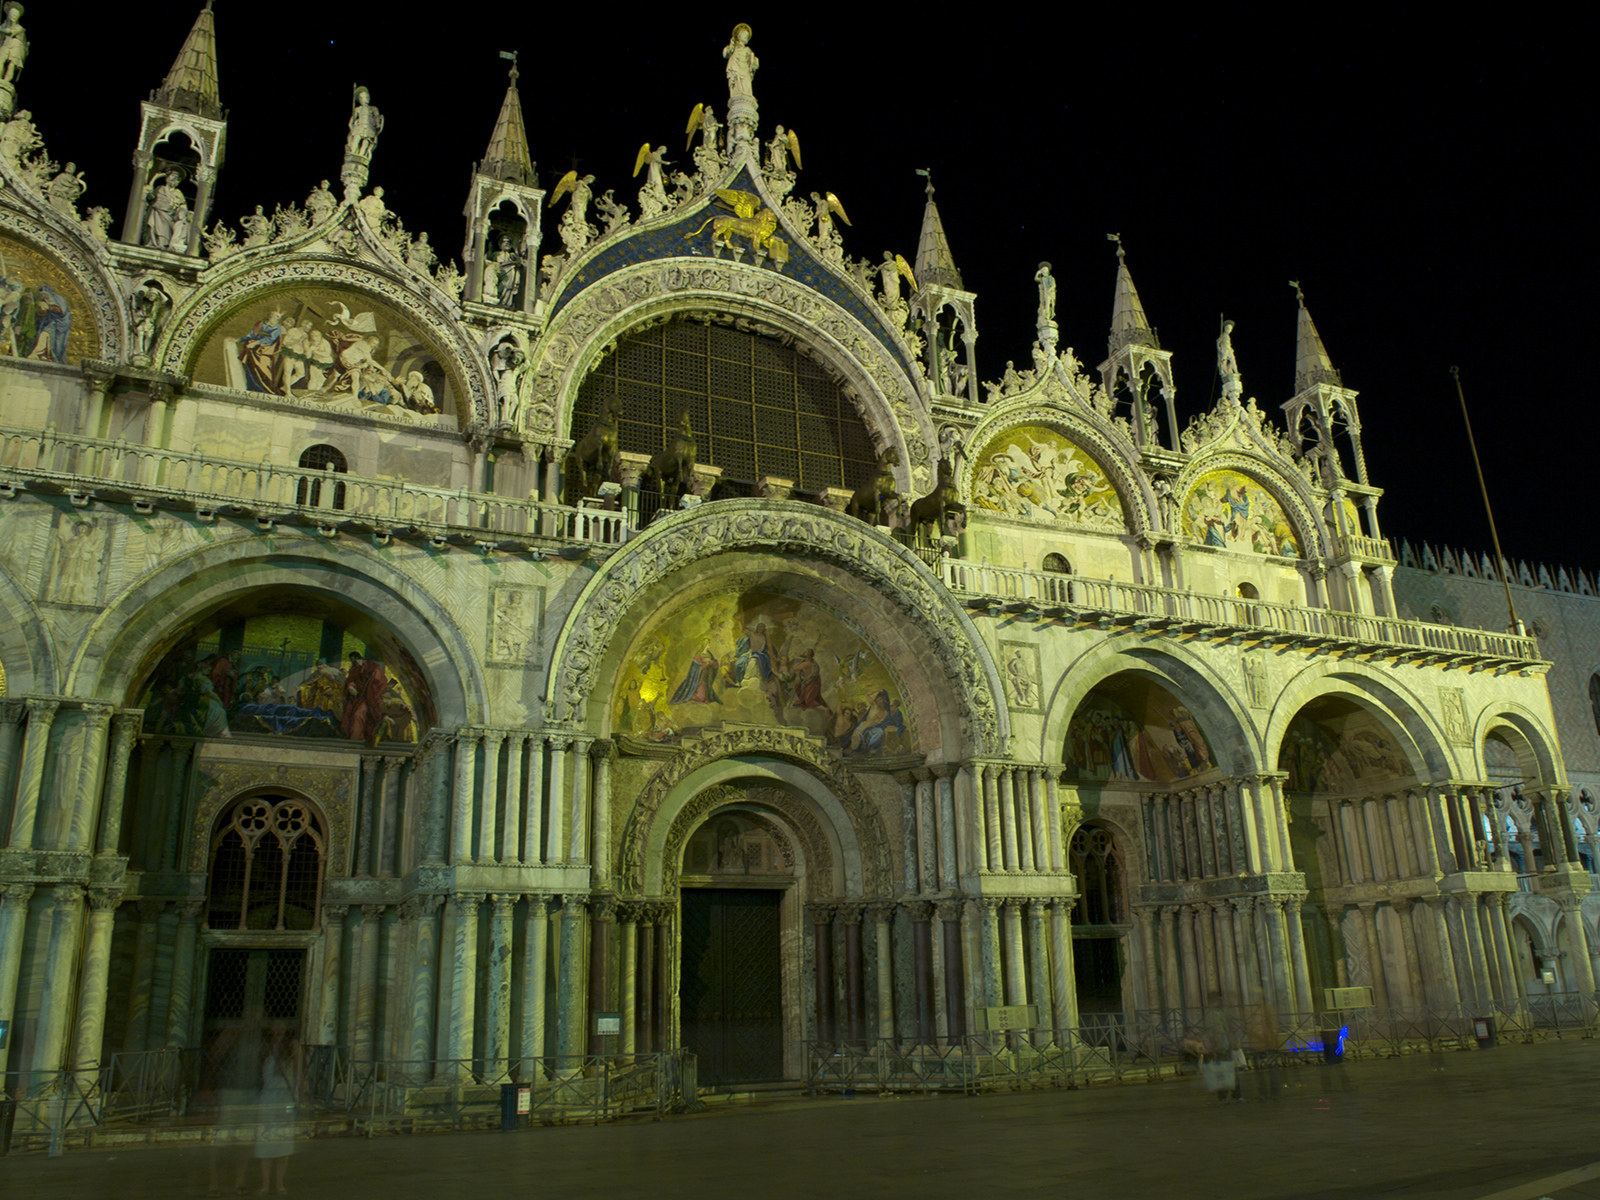 the ghosts of tourists passing in front of the Basilica on Piazza San Marco, Venice, Italy